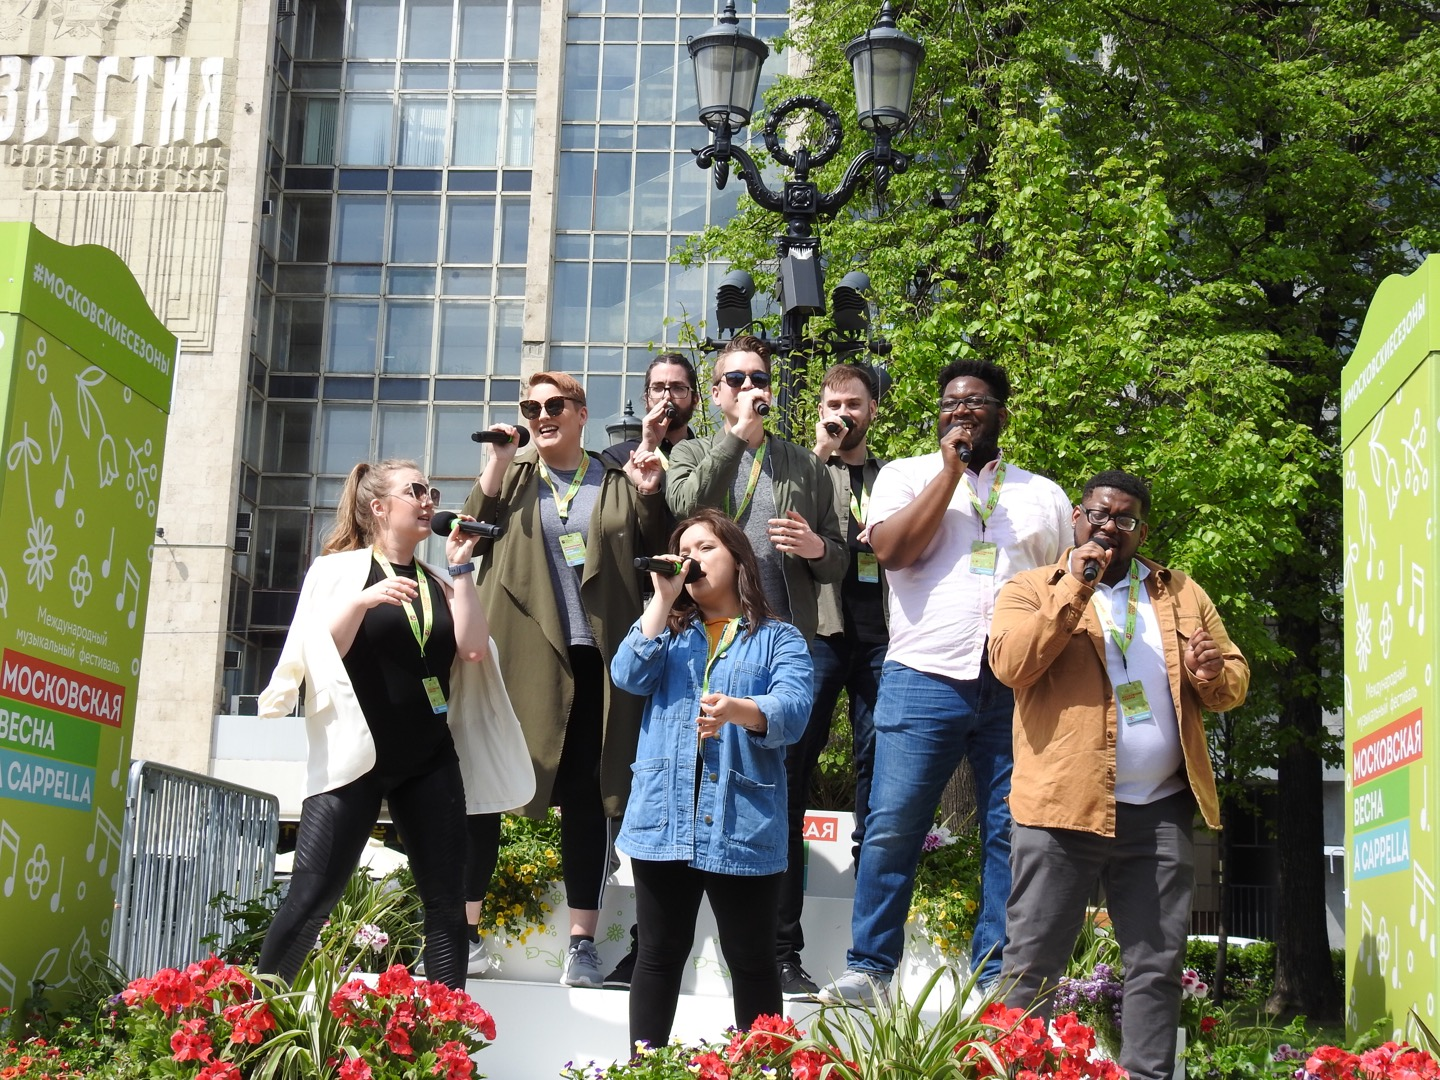 2019 Moscow Spring A Cappella Festival